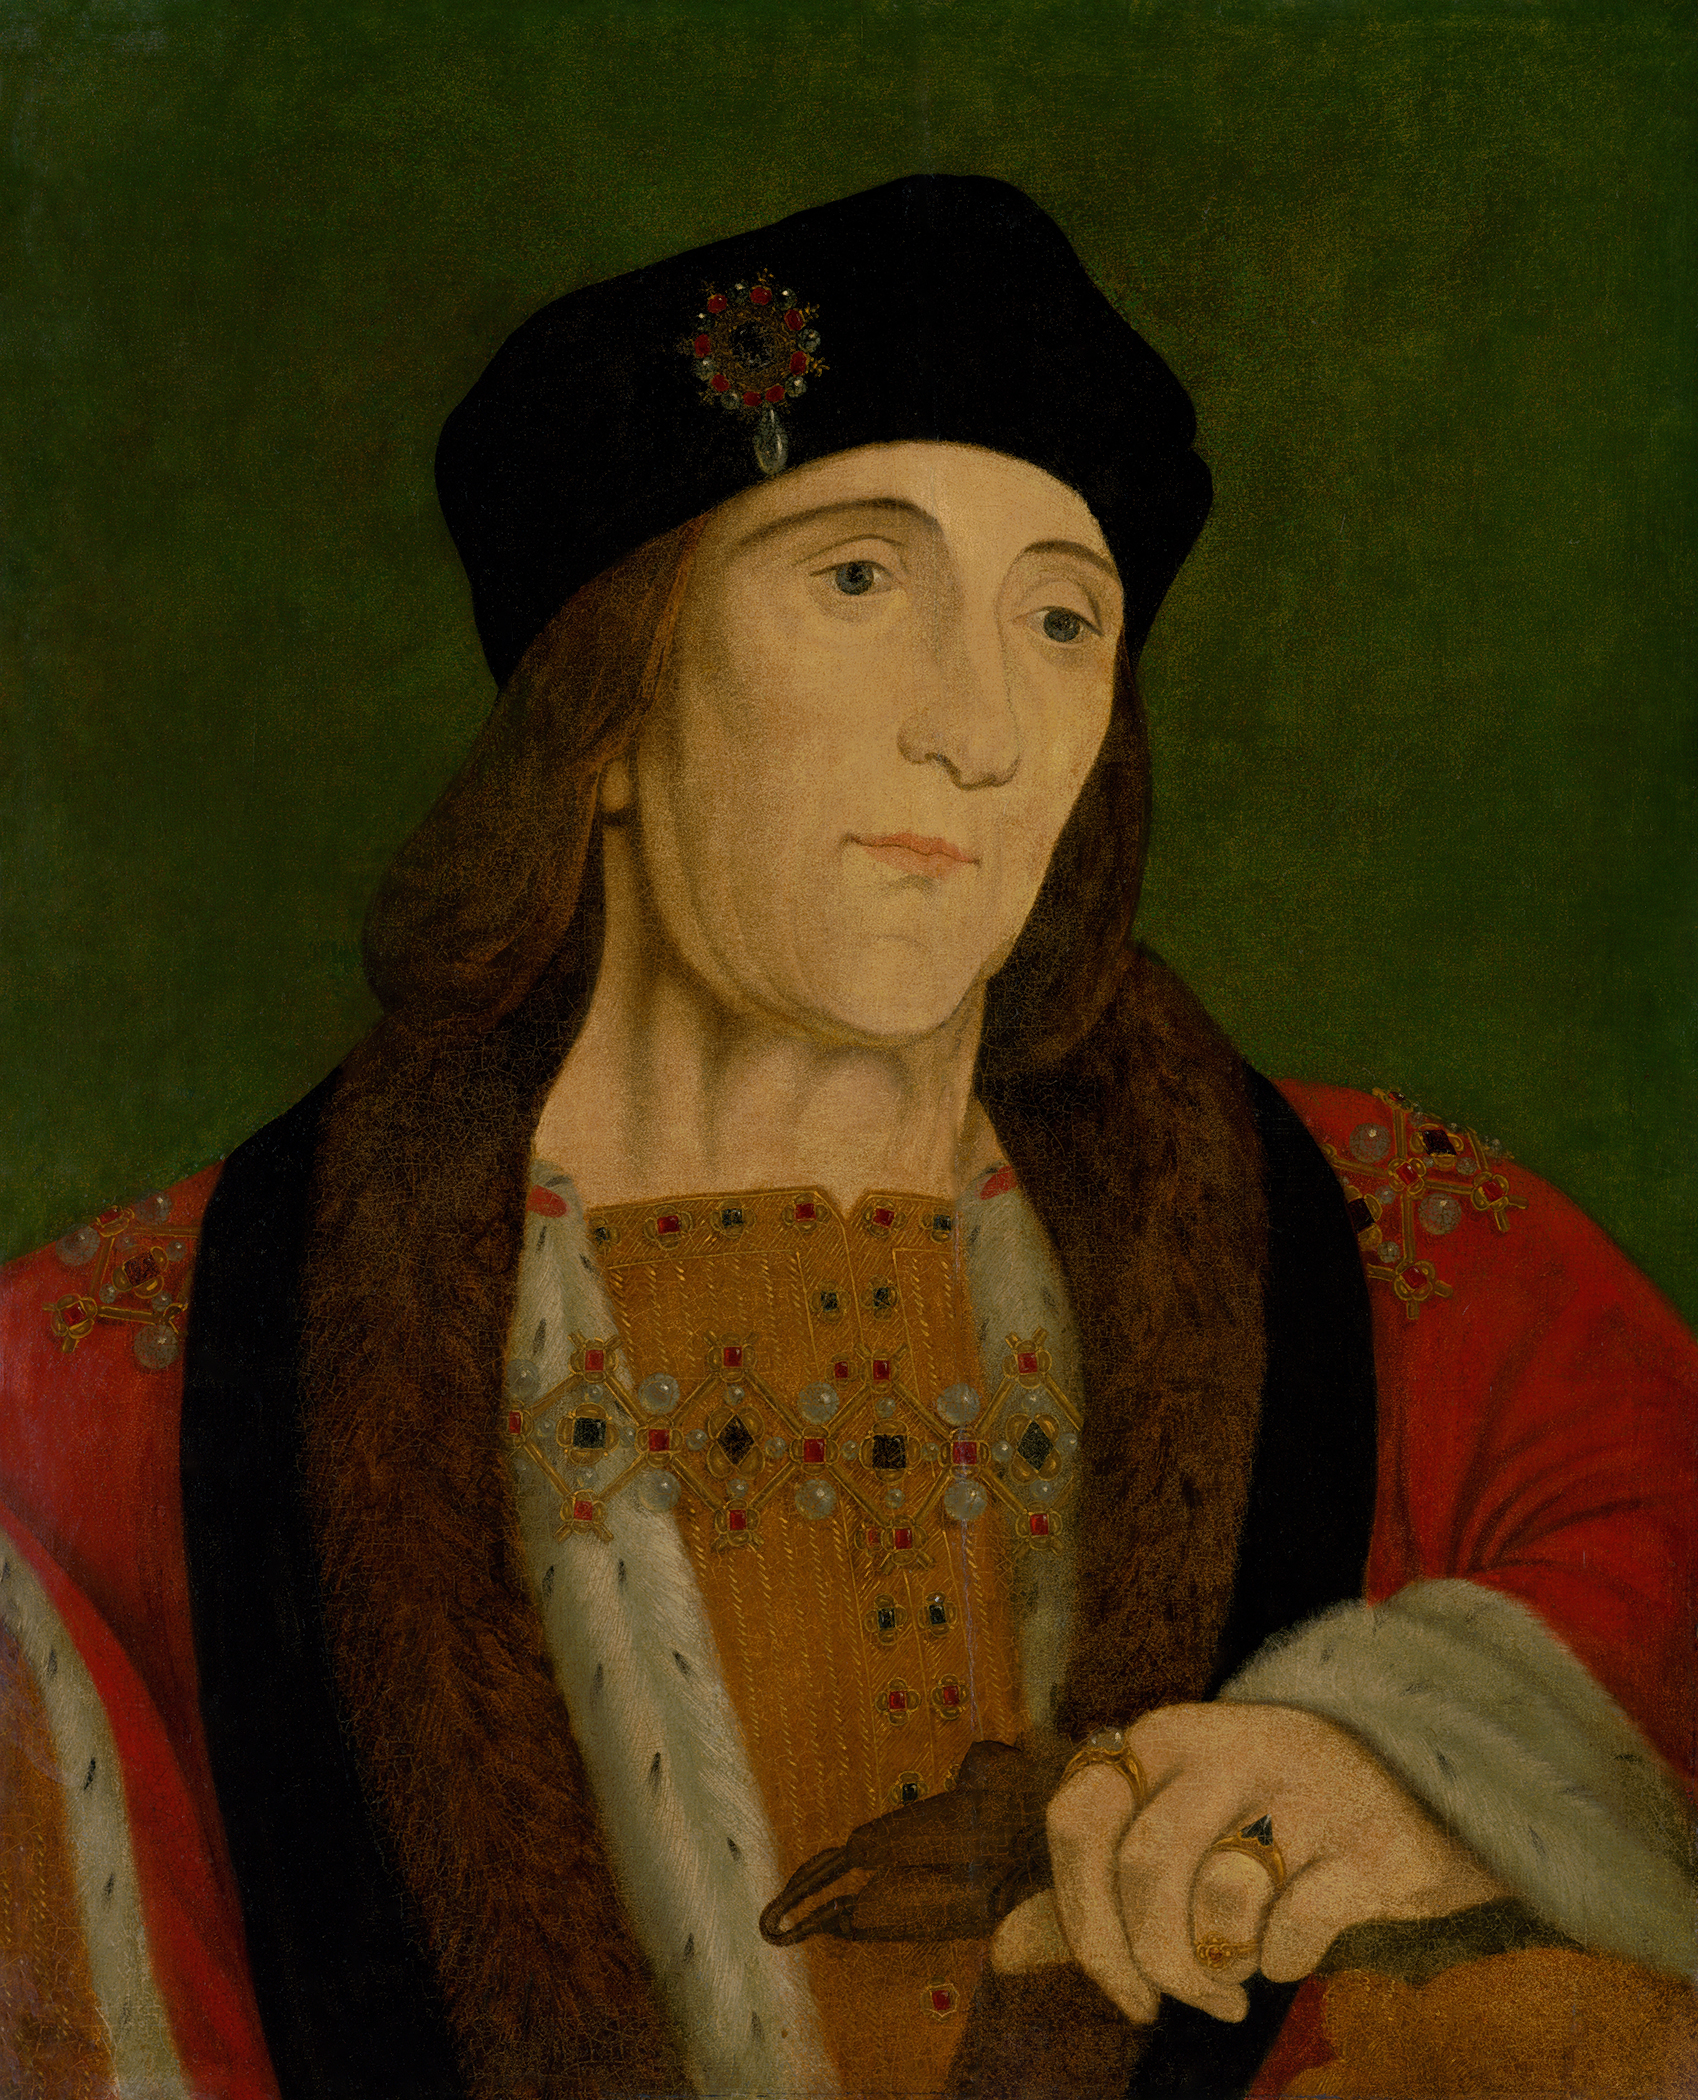 Portrait of Henry VII (1457-1509), King of England, Lord of Ireland (1485-1509) | Portraits of Kings